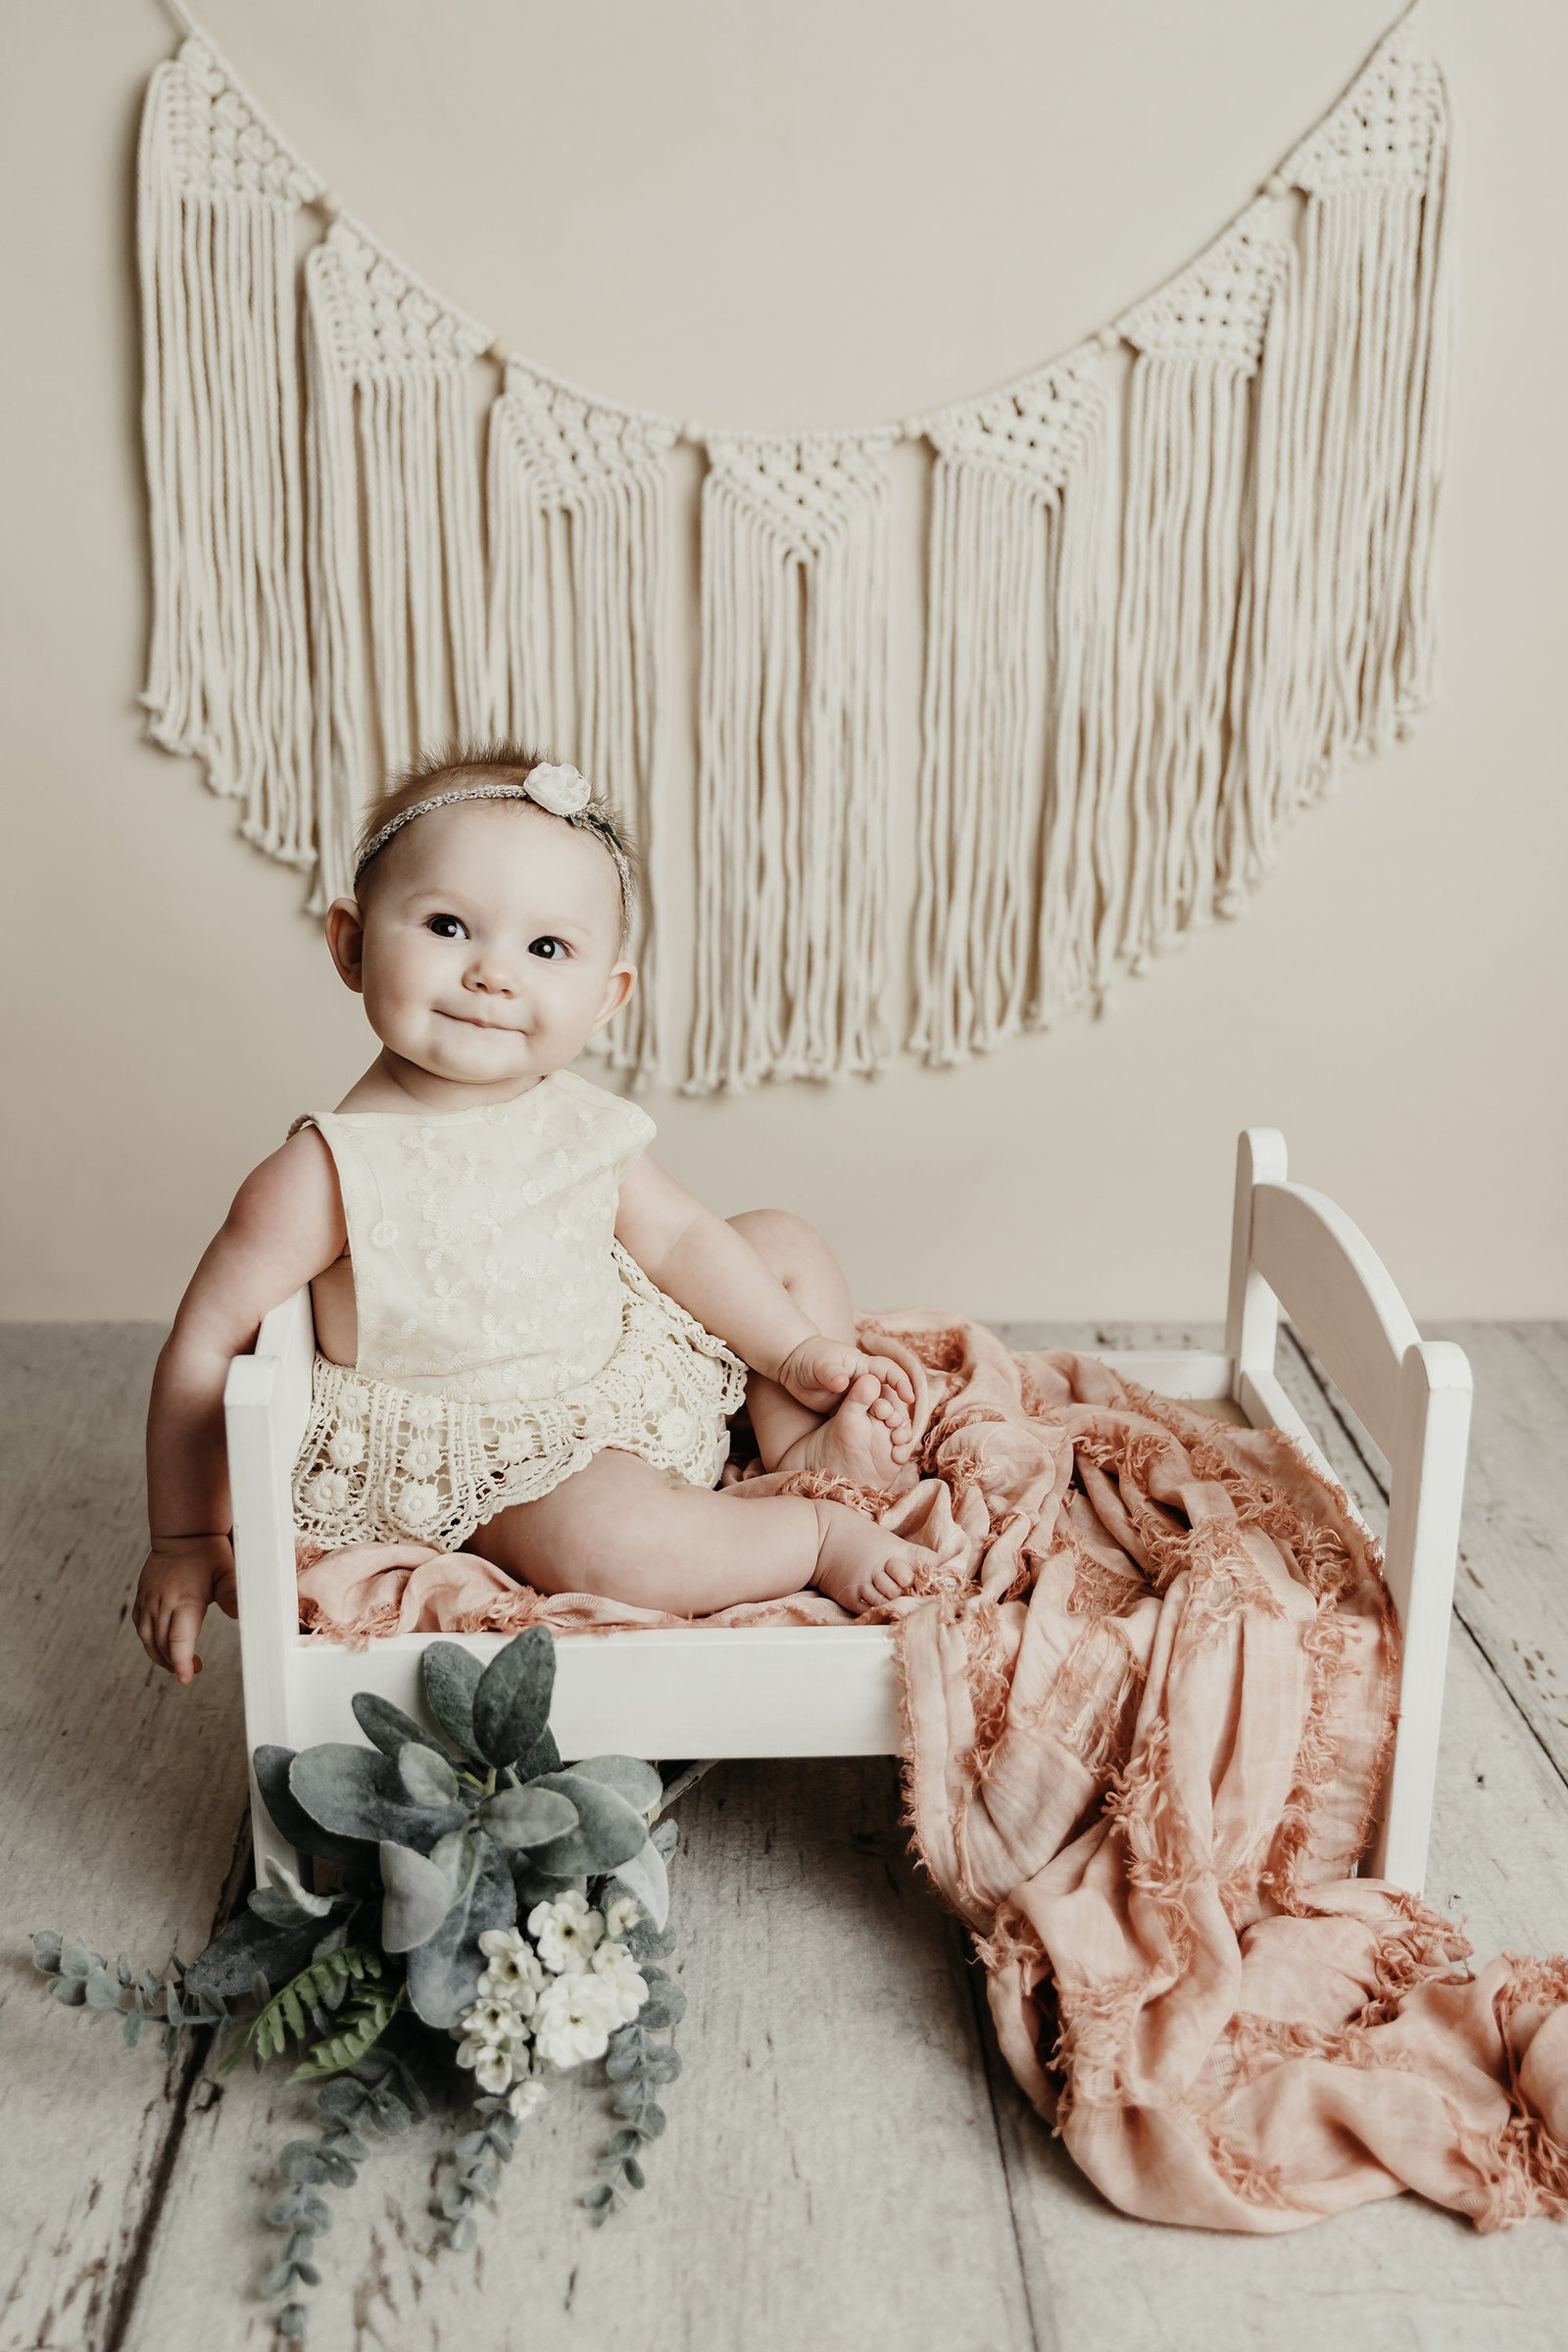 Karis 6 Month Sitter Session Boise baby photographer